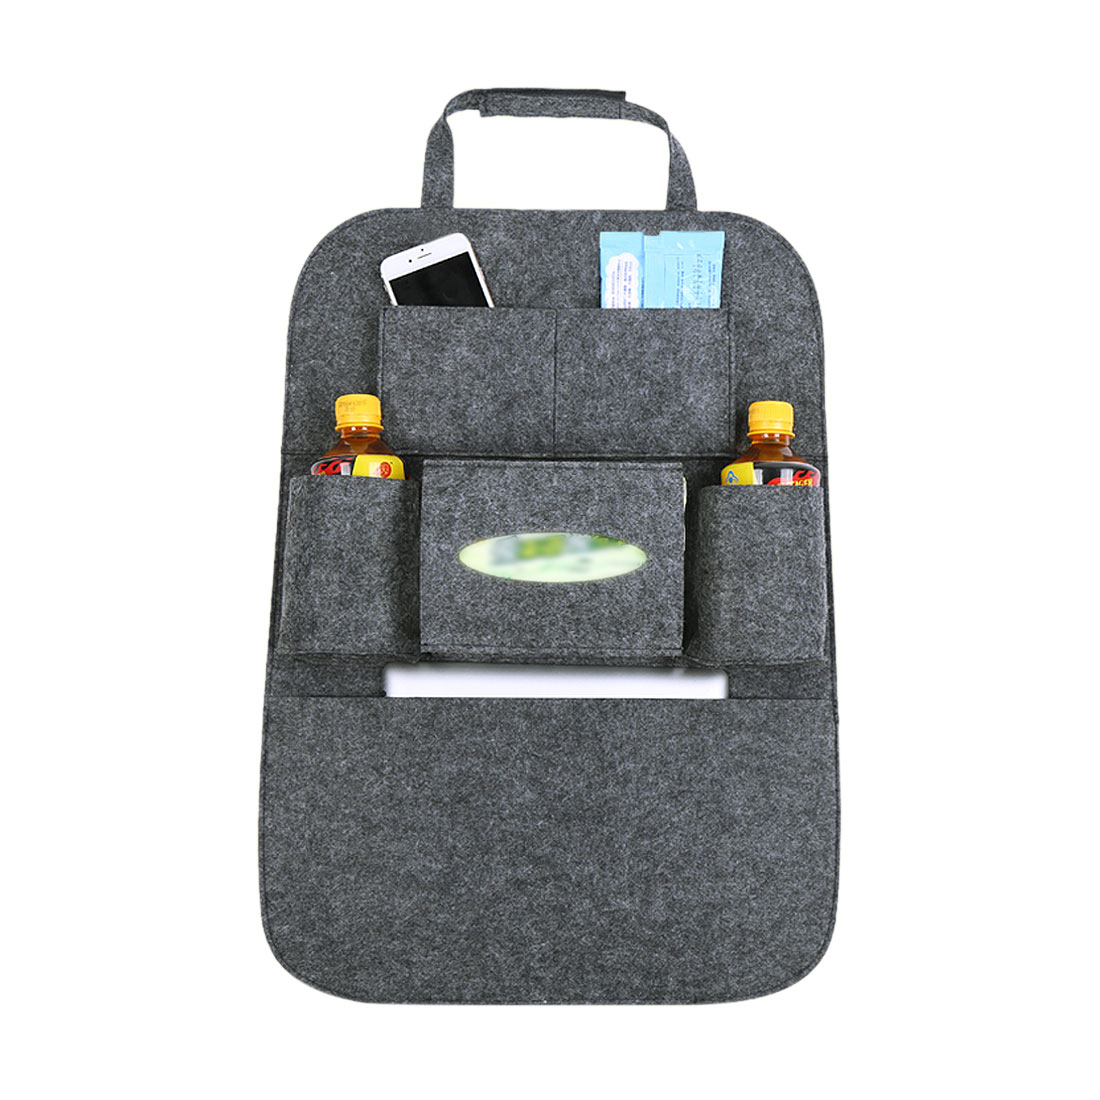 Deep Gray Car Seat Back Multi-Pocket Storage Bag Organizer Holder Travel Hanger